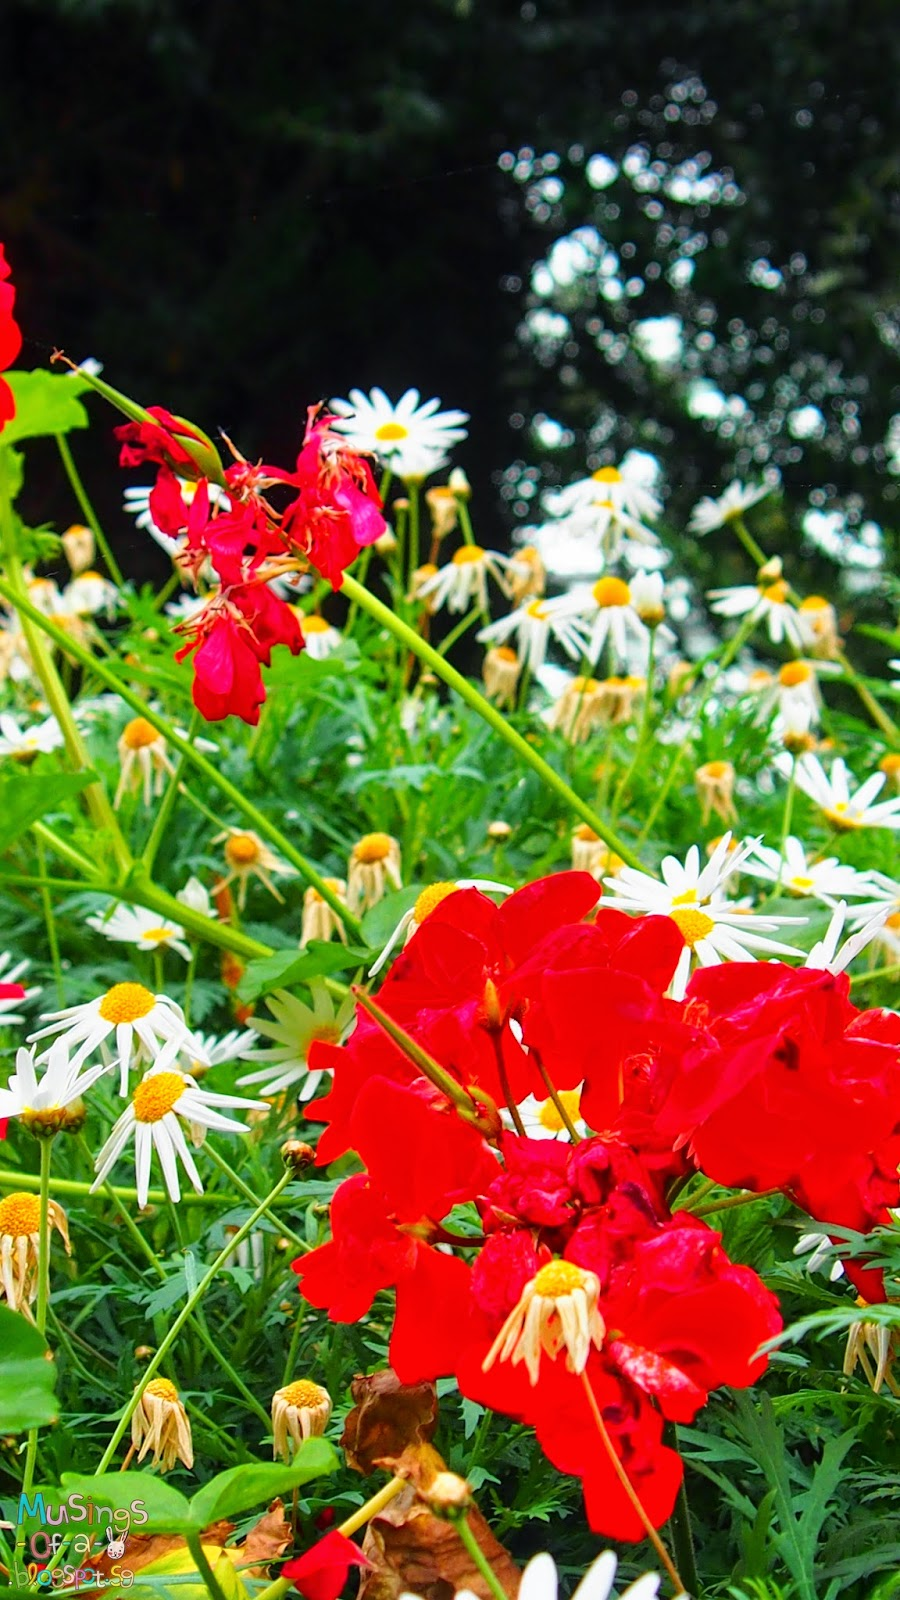 Red, White and Yellow Flowers